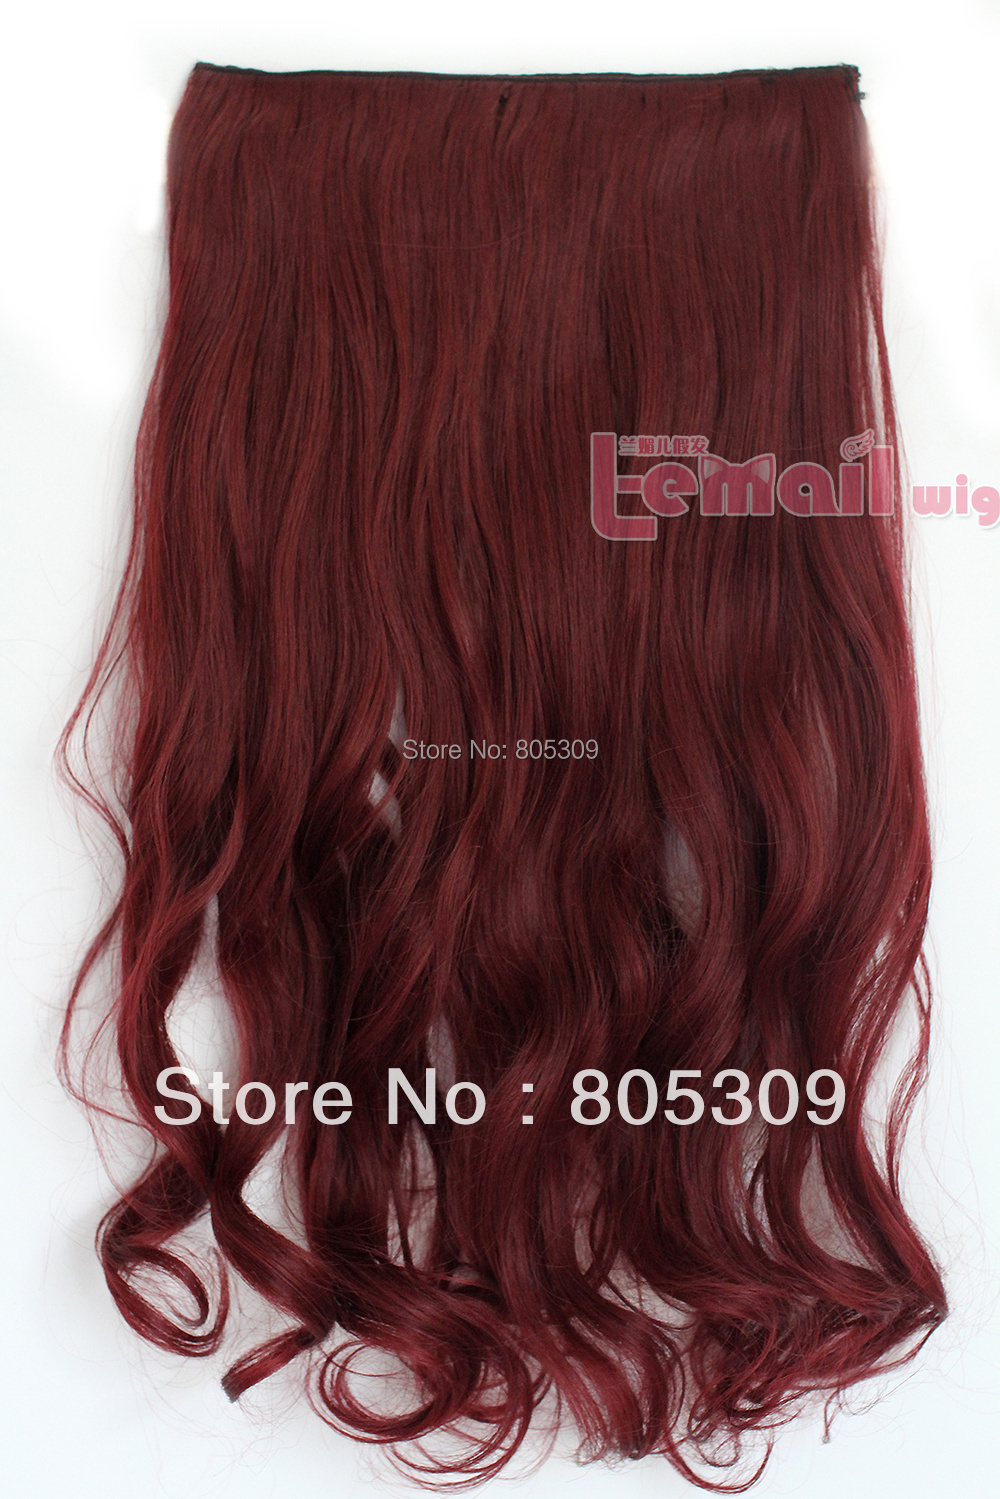 Free Shipping 23*50CM Brown Color Long Women Synthetic Clip-In Curly Hair Extension Hairpiece(China (Mainland))